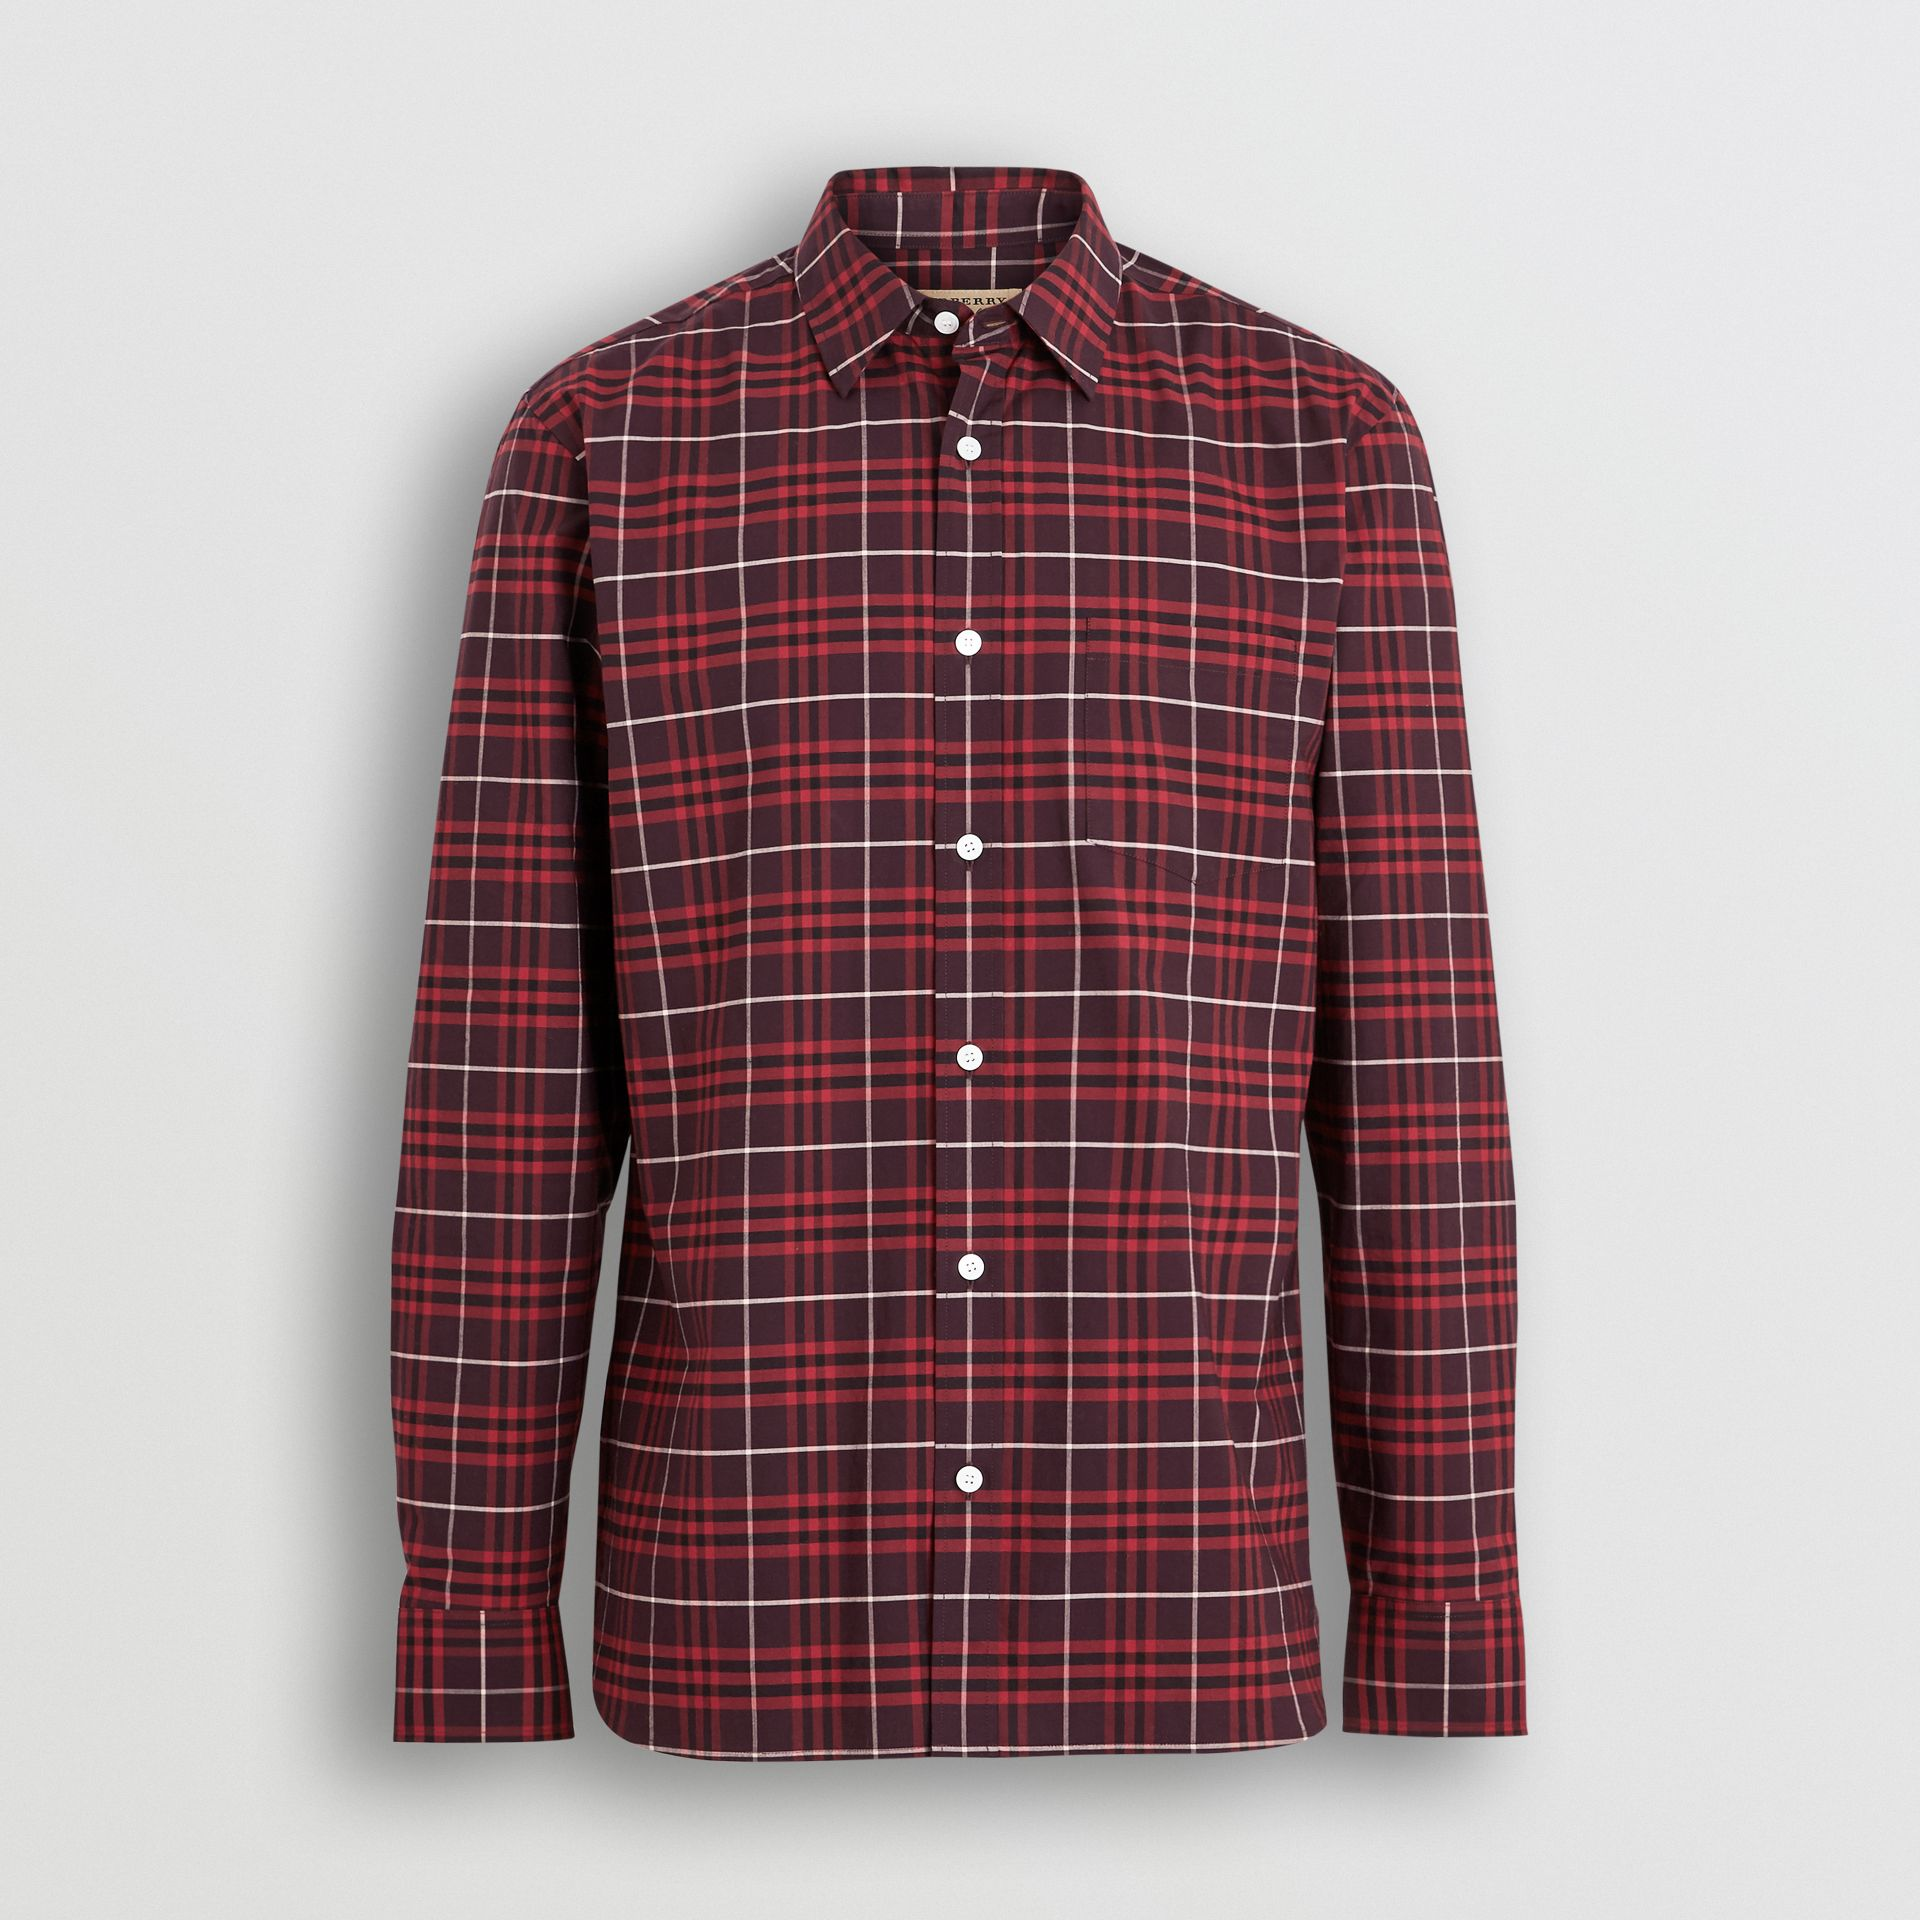 Chemise en coton extensible à motif check (Bordeaux) - Homme | Burberry - photo de la galerie 3